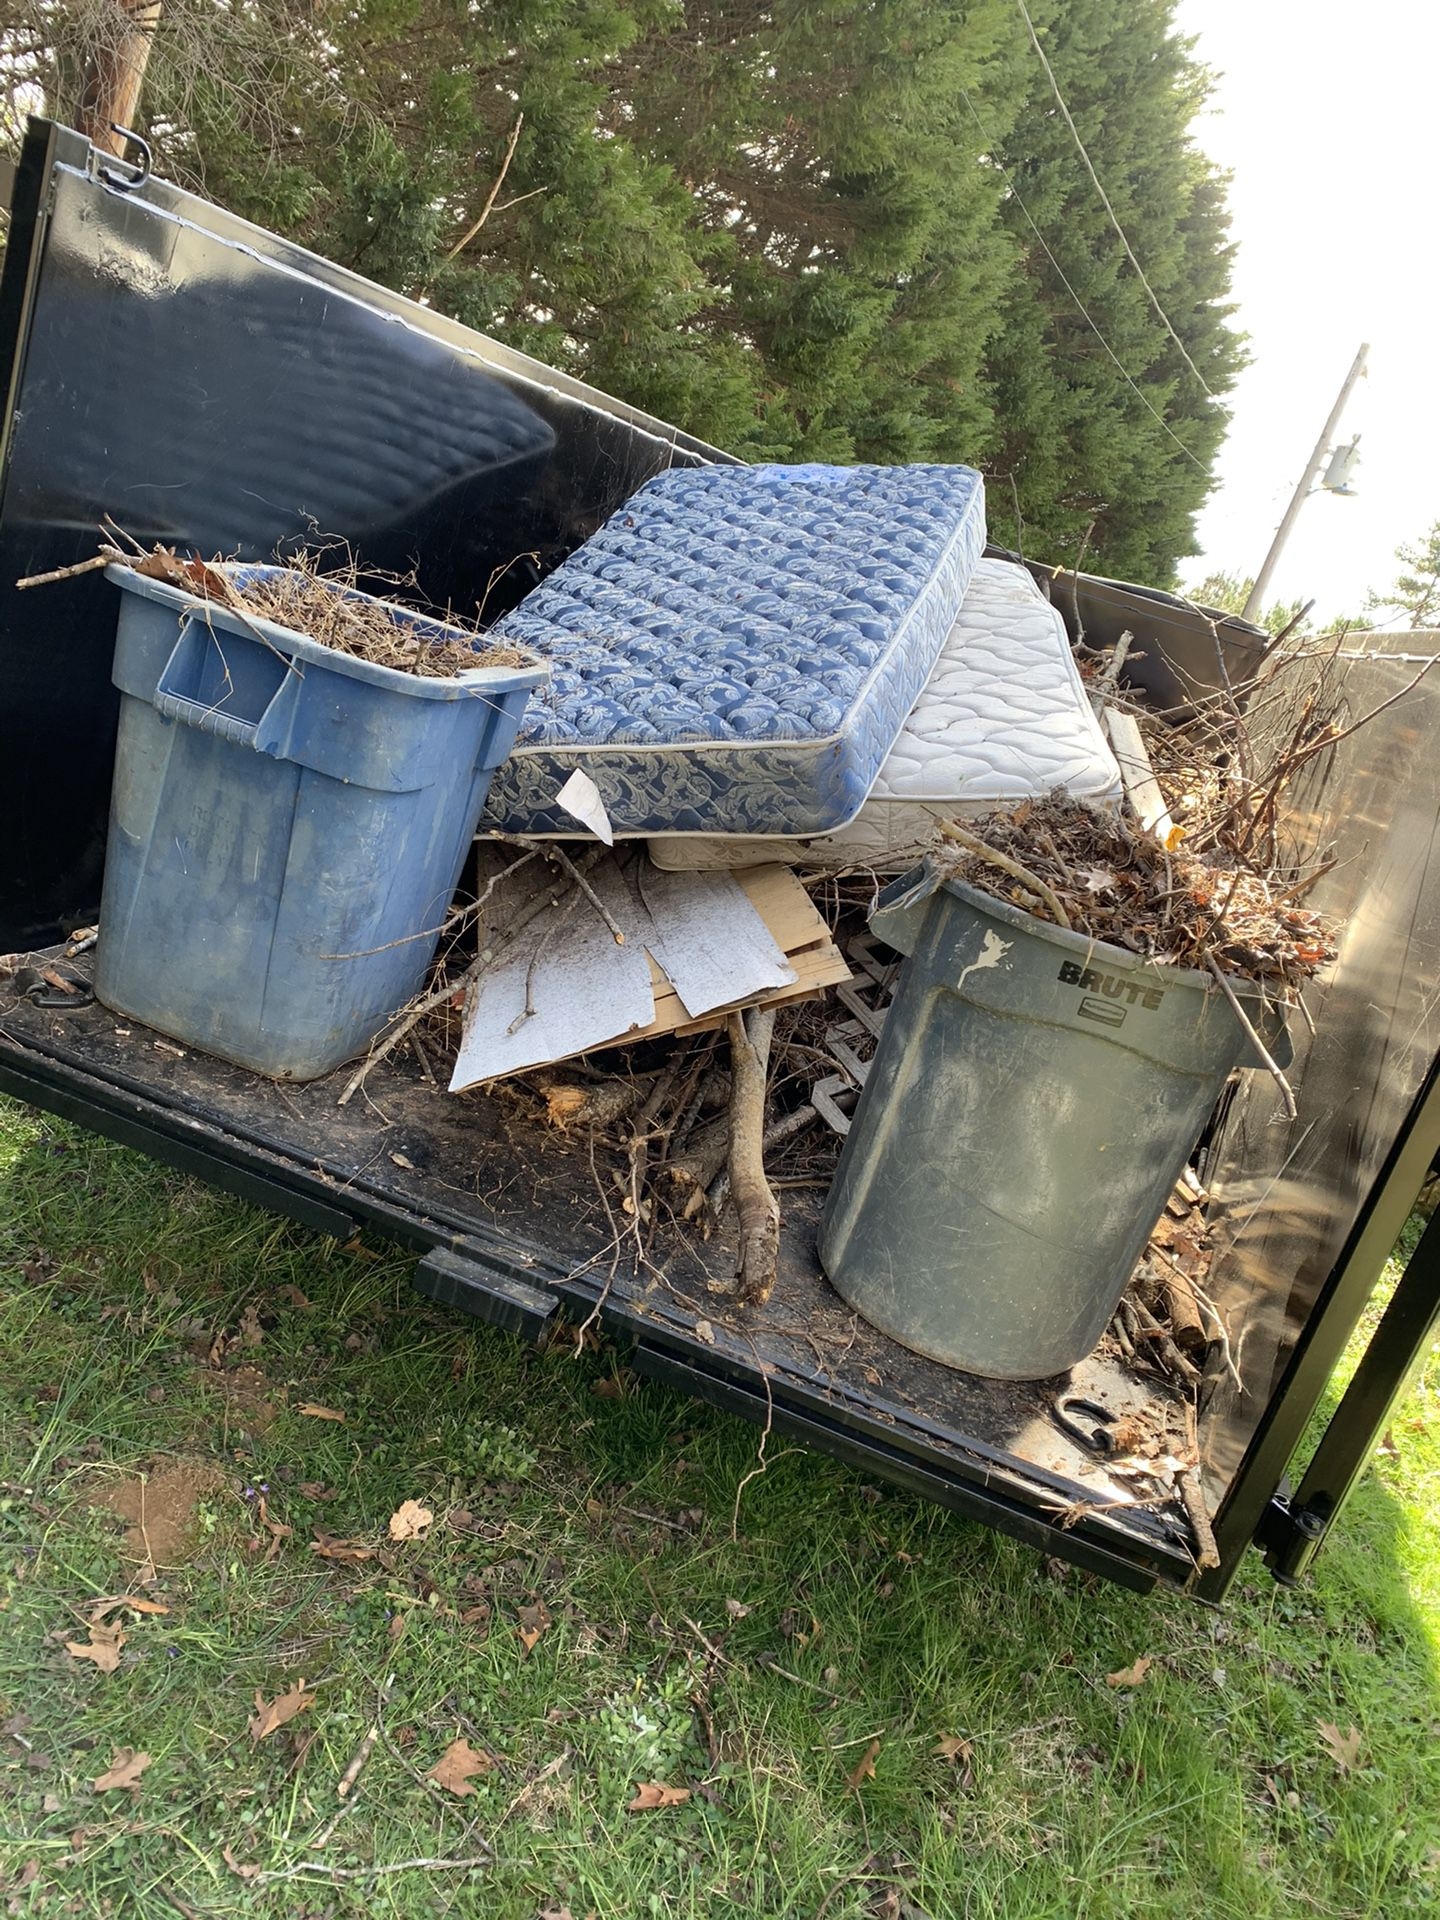 Hauling/Junk removal